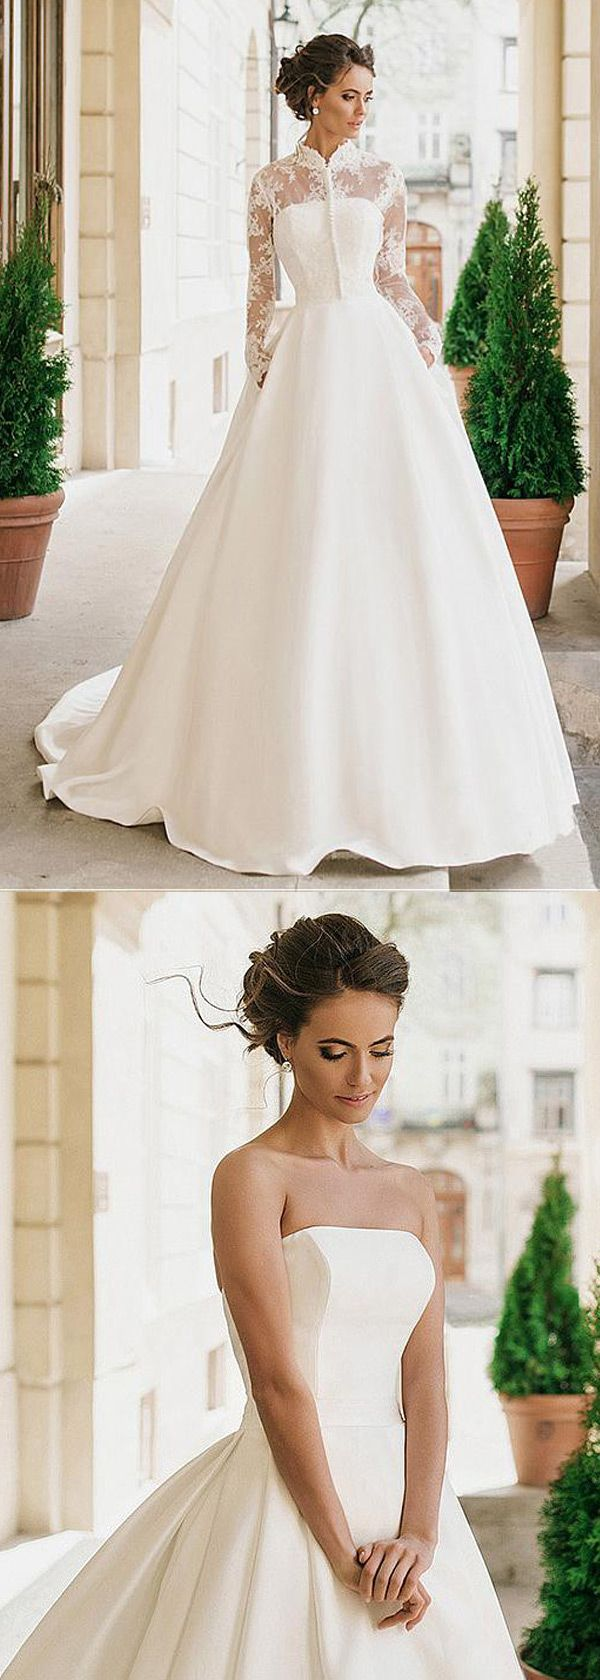 Wedding dress with collar  Gorgeous Satin High Collar Neckline Aline Wedding Dresses With